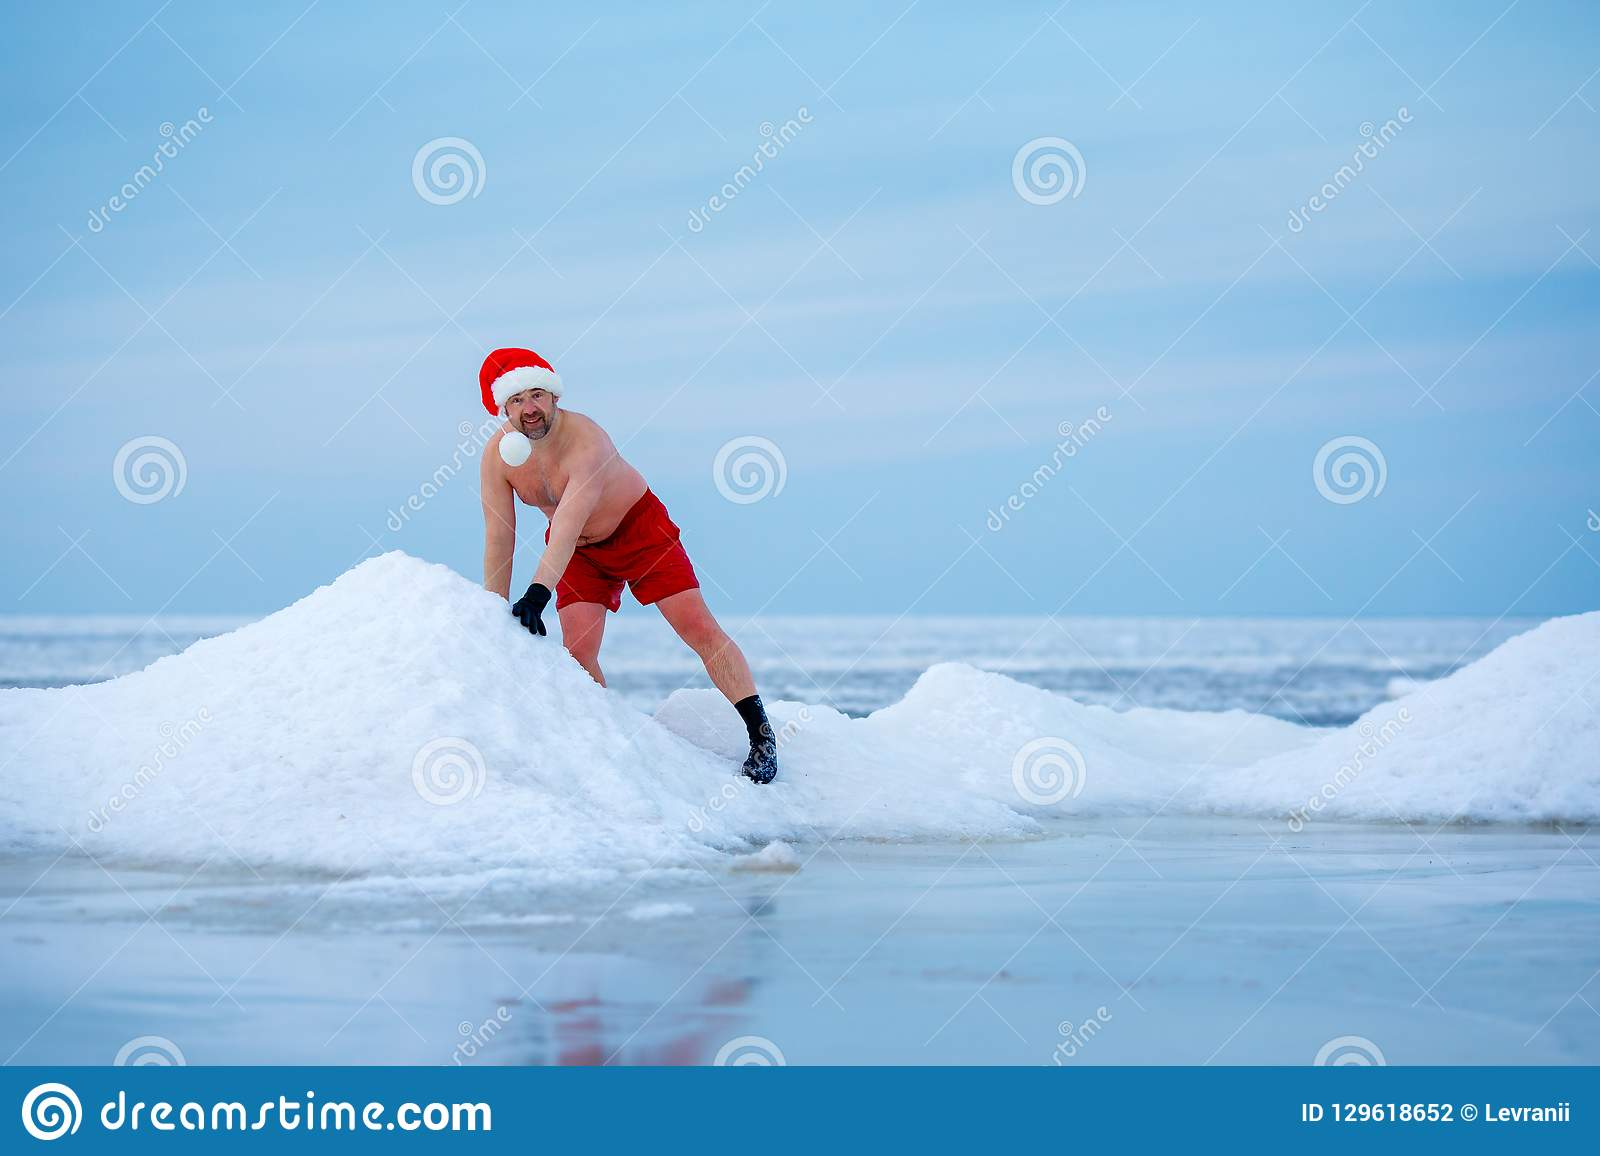 ef99c1409d5 Winter bather in a Santa`s hat stays in a frozen sea. Healthy lifestyle.  Christmas celebration